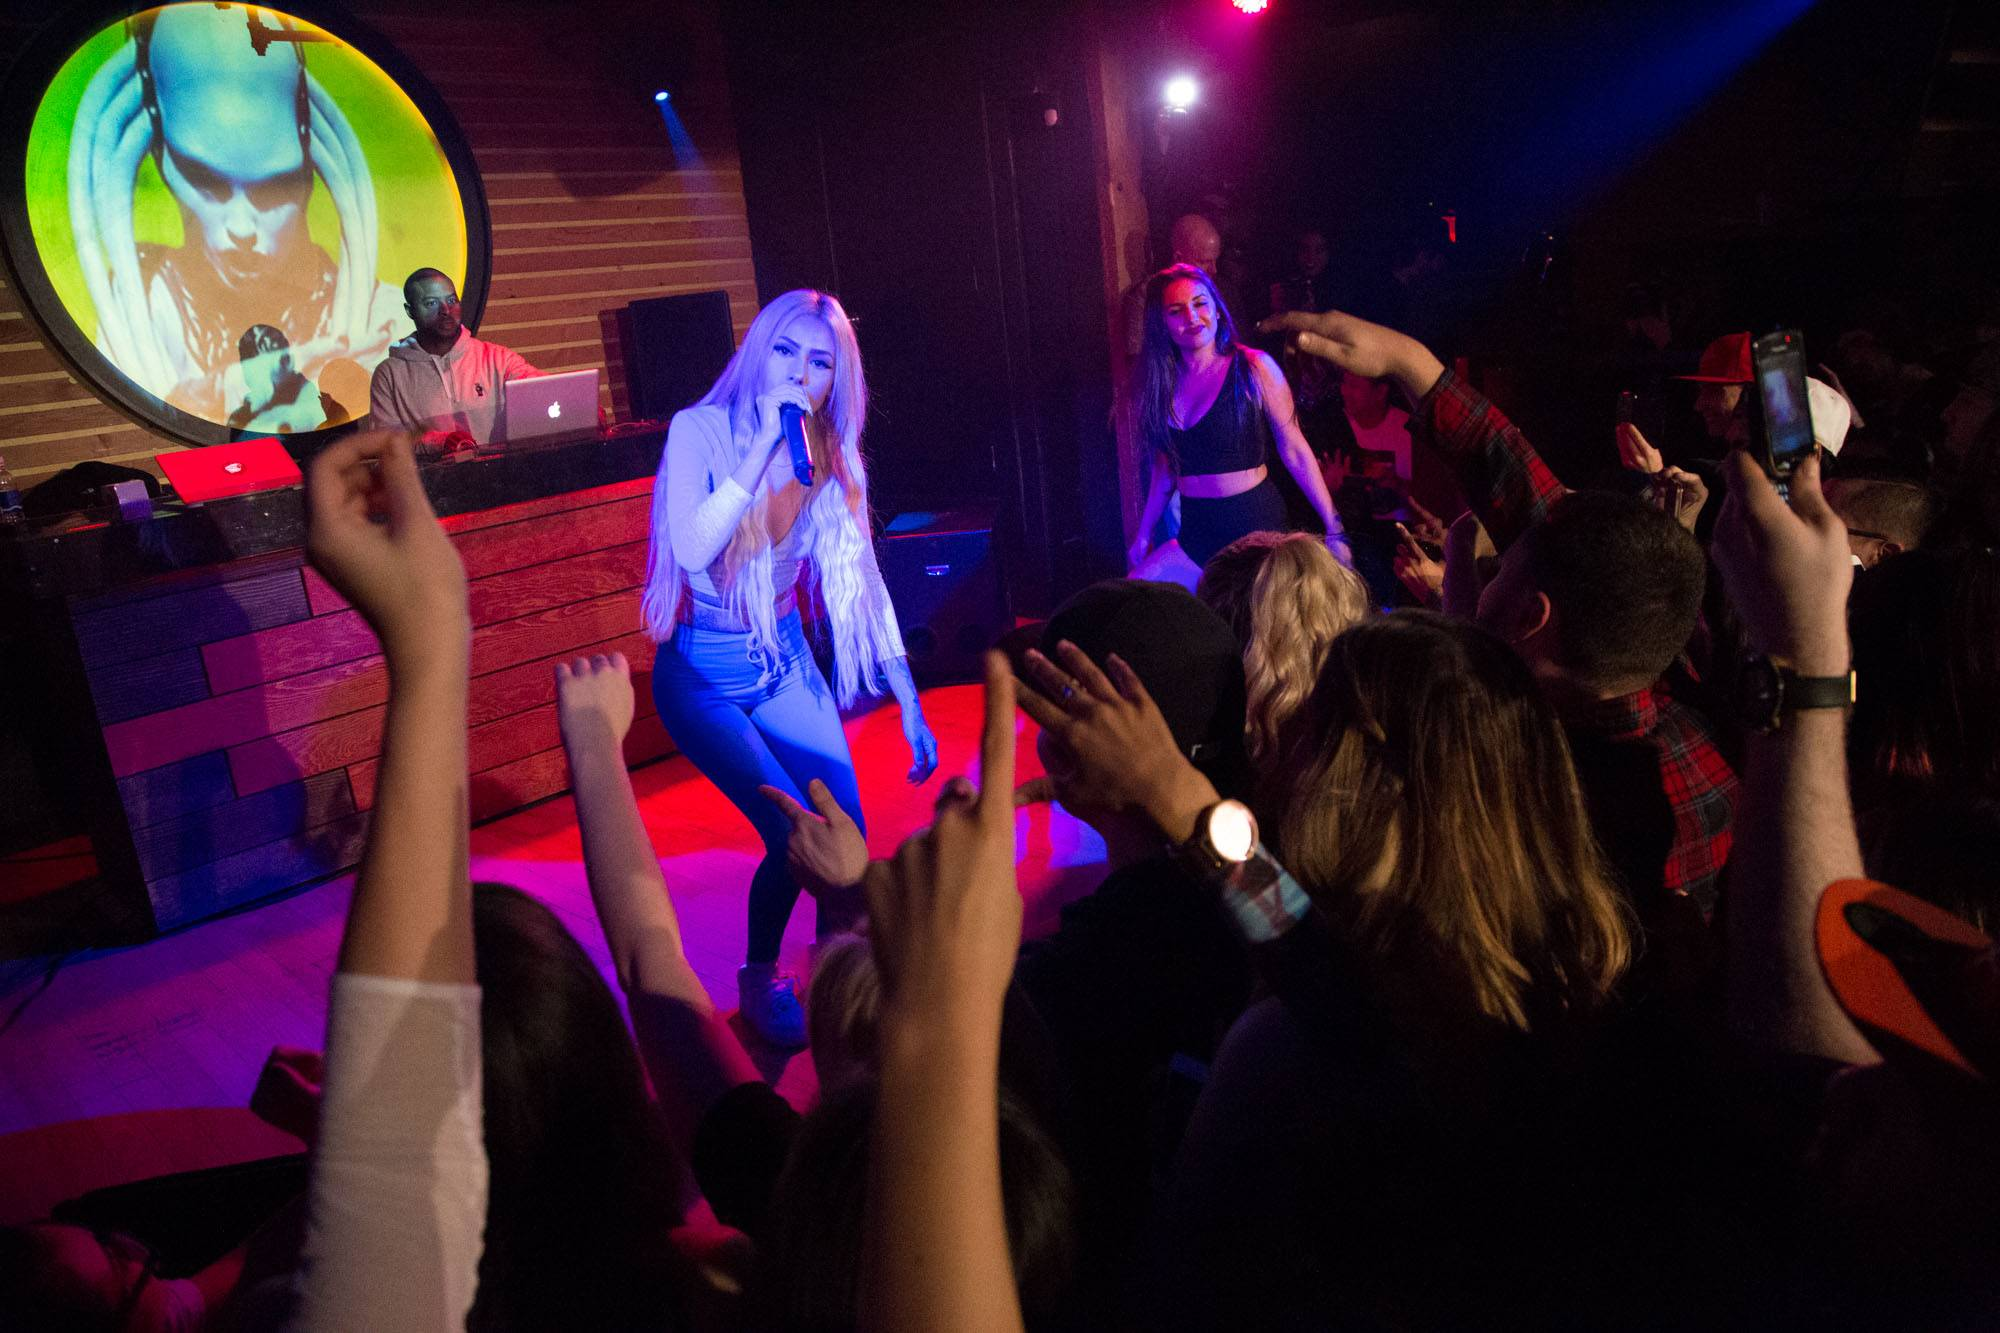 Lil Debbie at Fortune Sound Club, Vancouver, Feb. 27 2015. Kirk Chantraine photo.